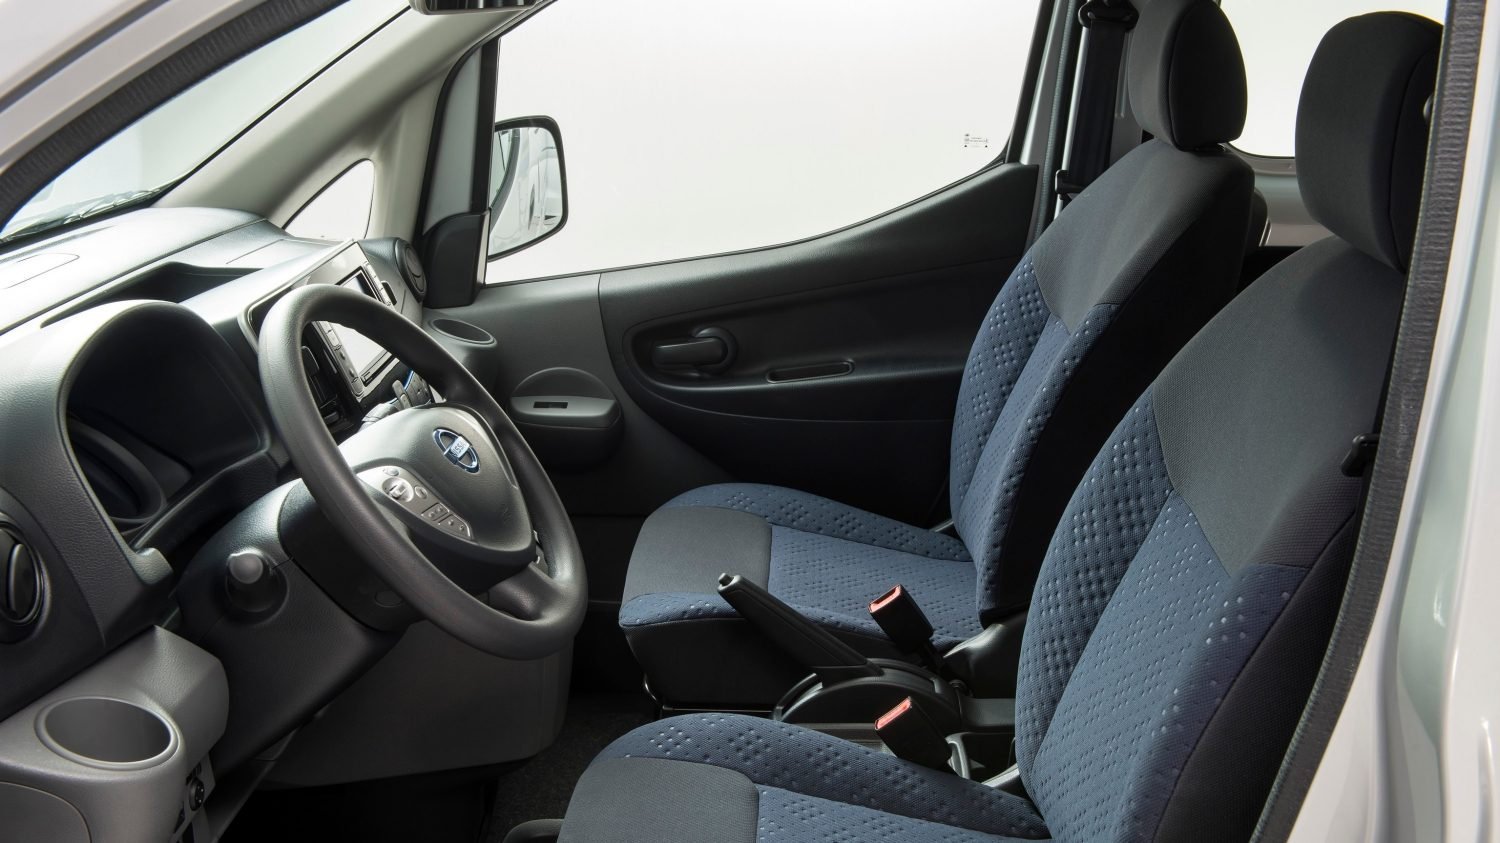 Nissan e-NV200 - Front interior view